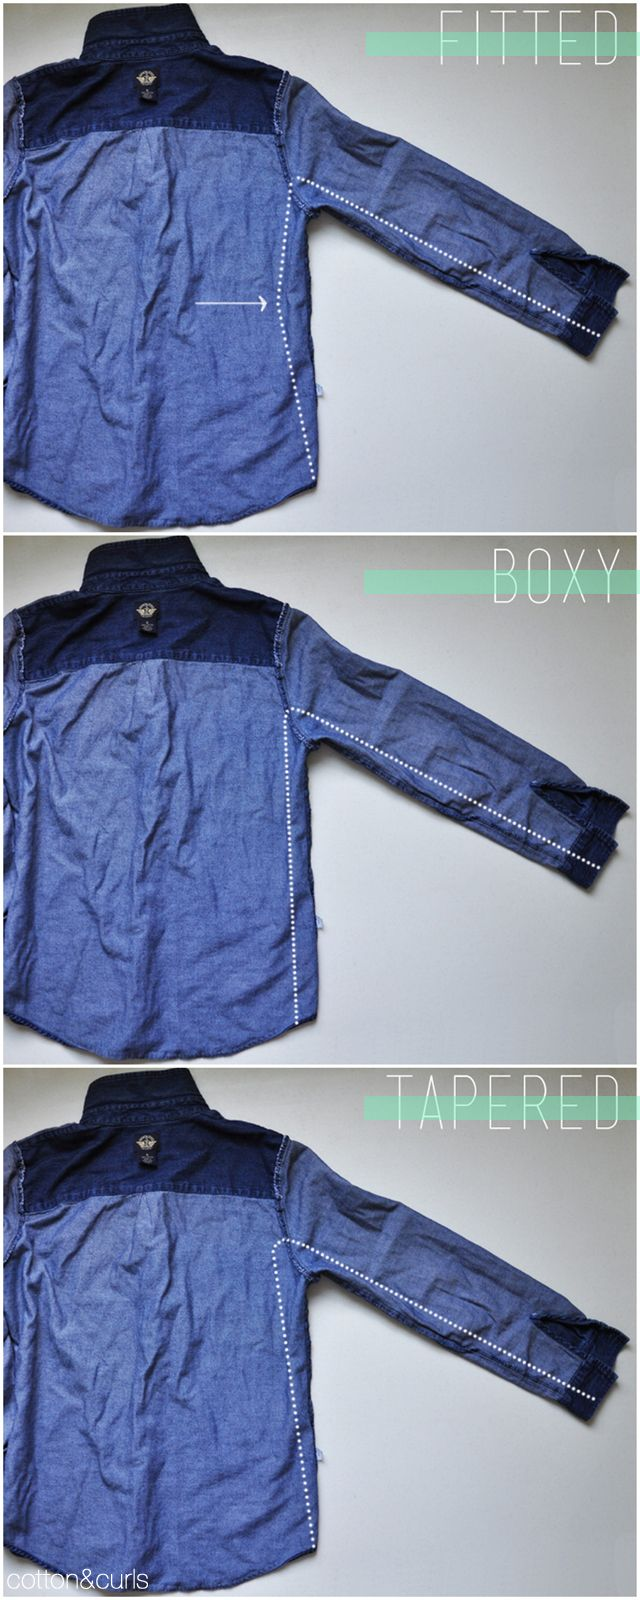 C: 3 ways to revamp a button up shirt